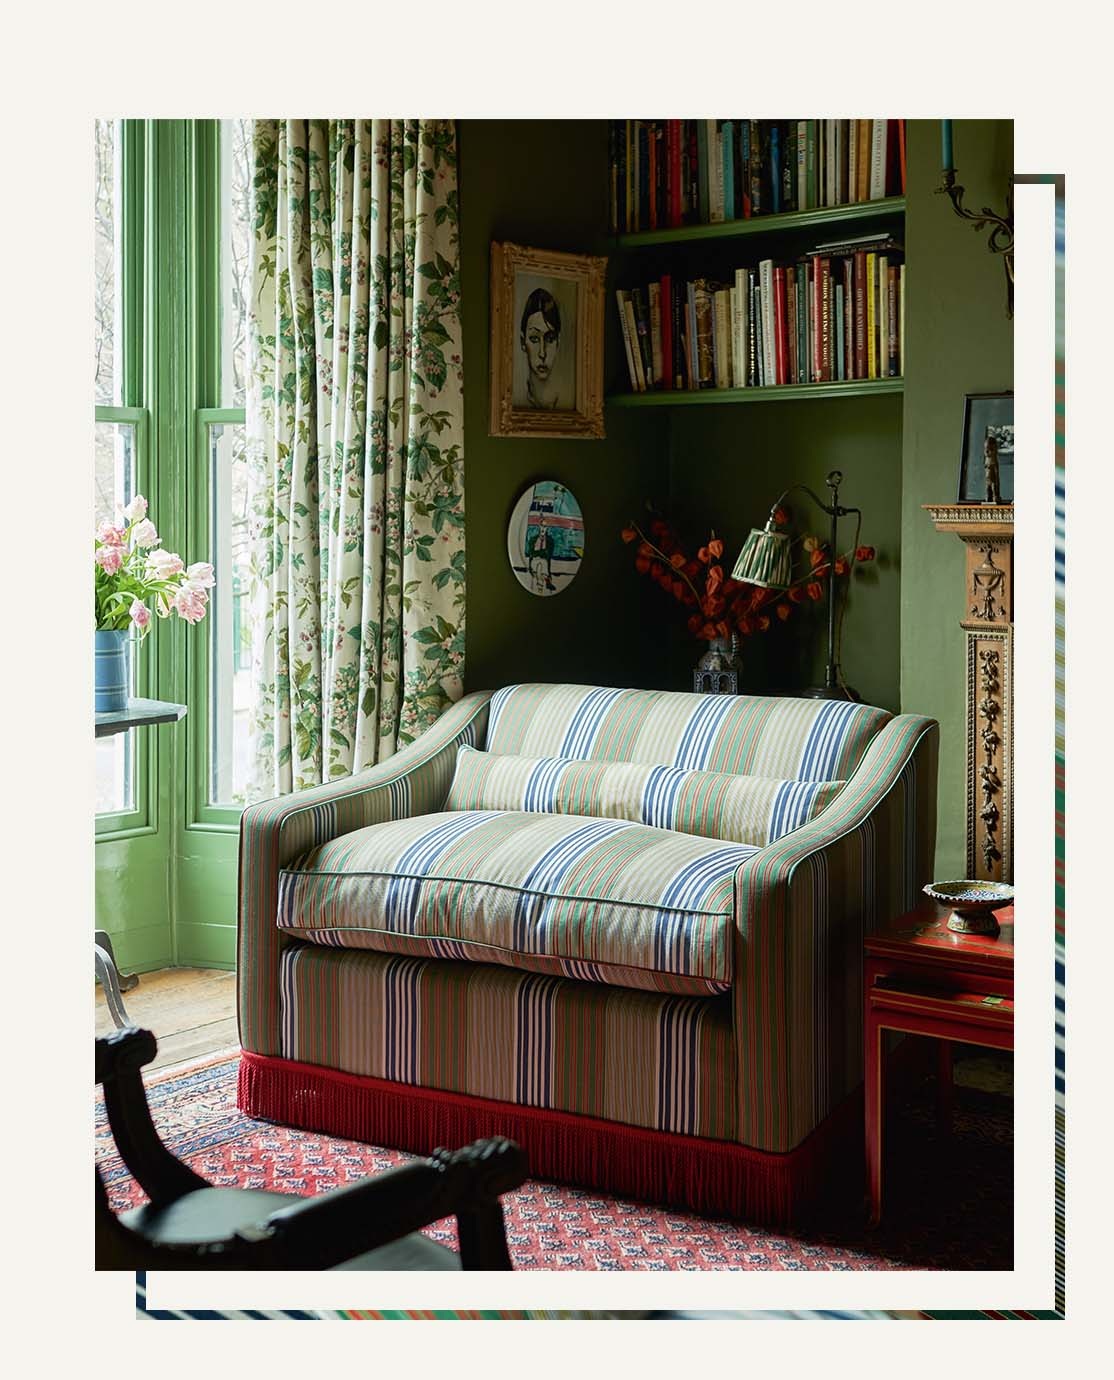 Gavin Houghton's green striped Tailored by OKA sofa in a green sitting room